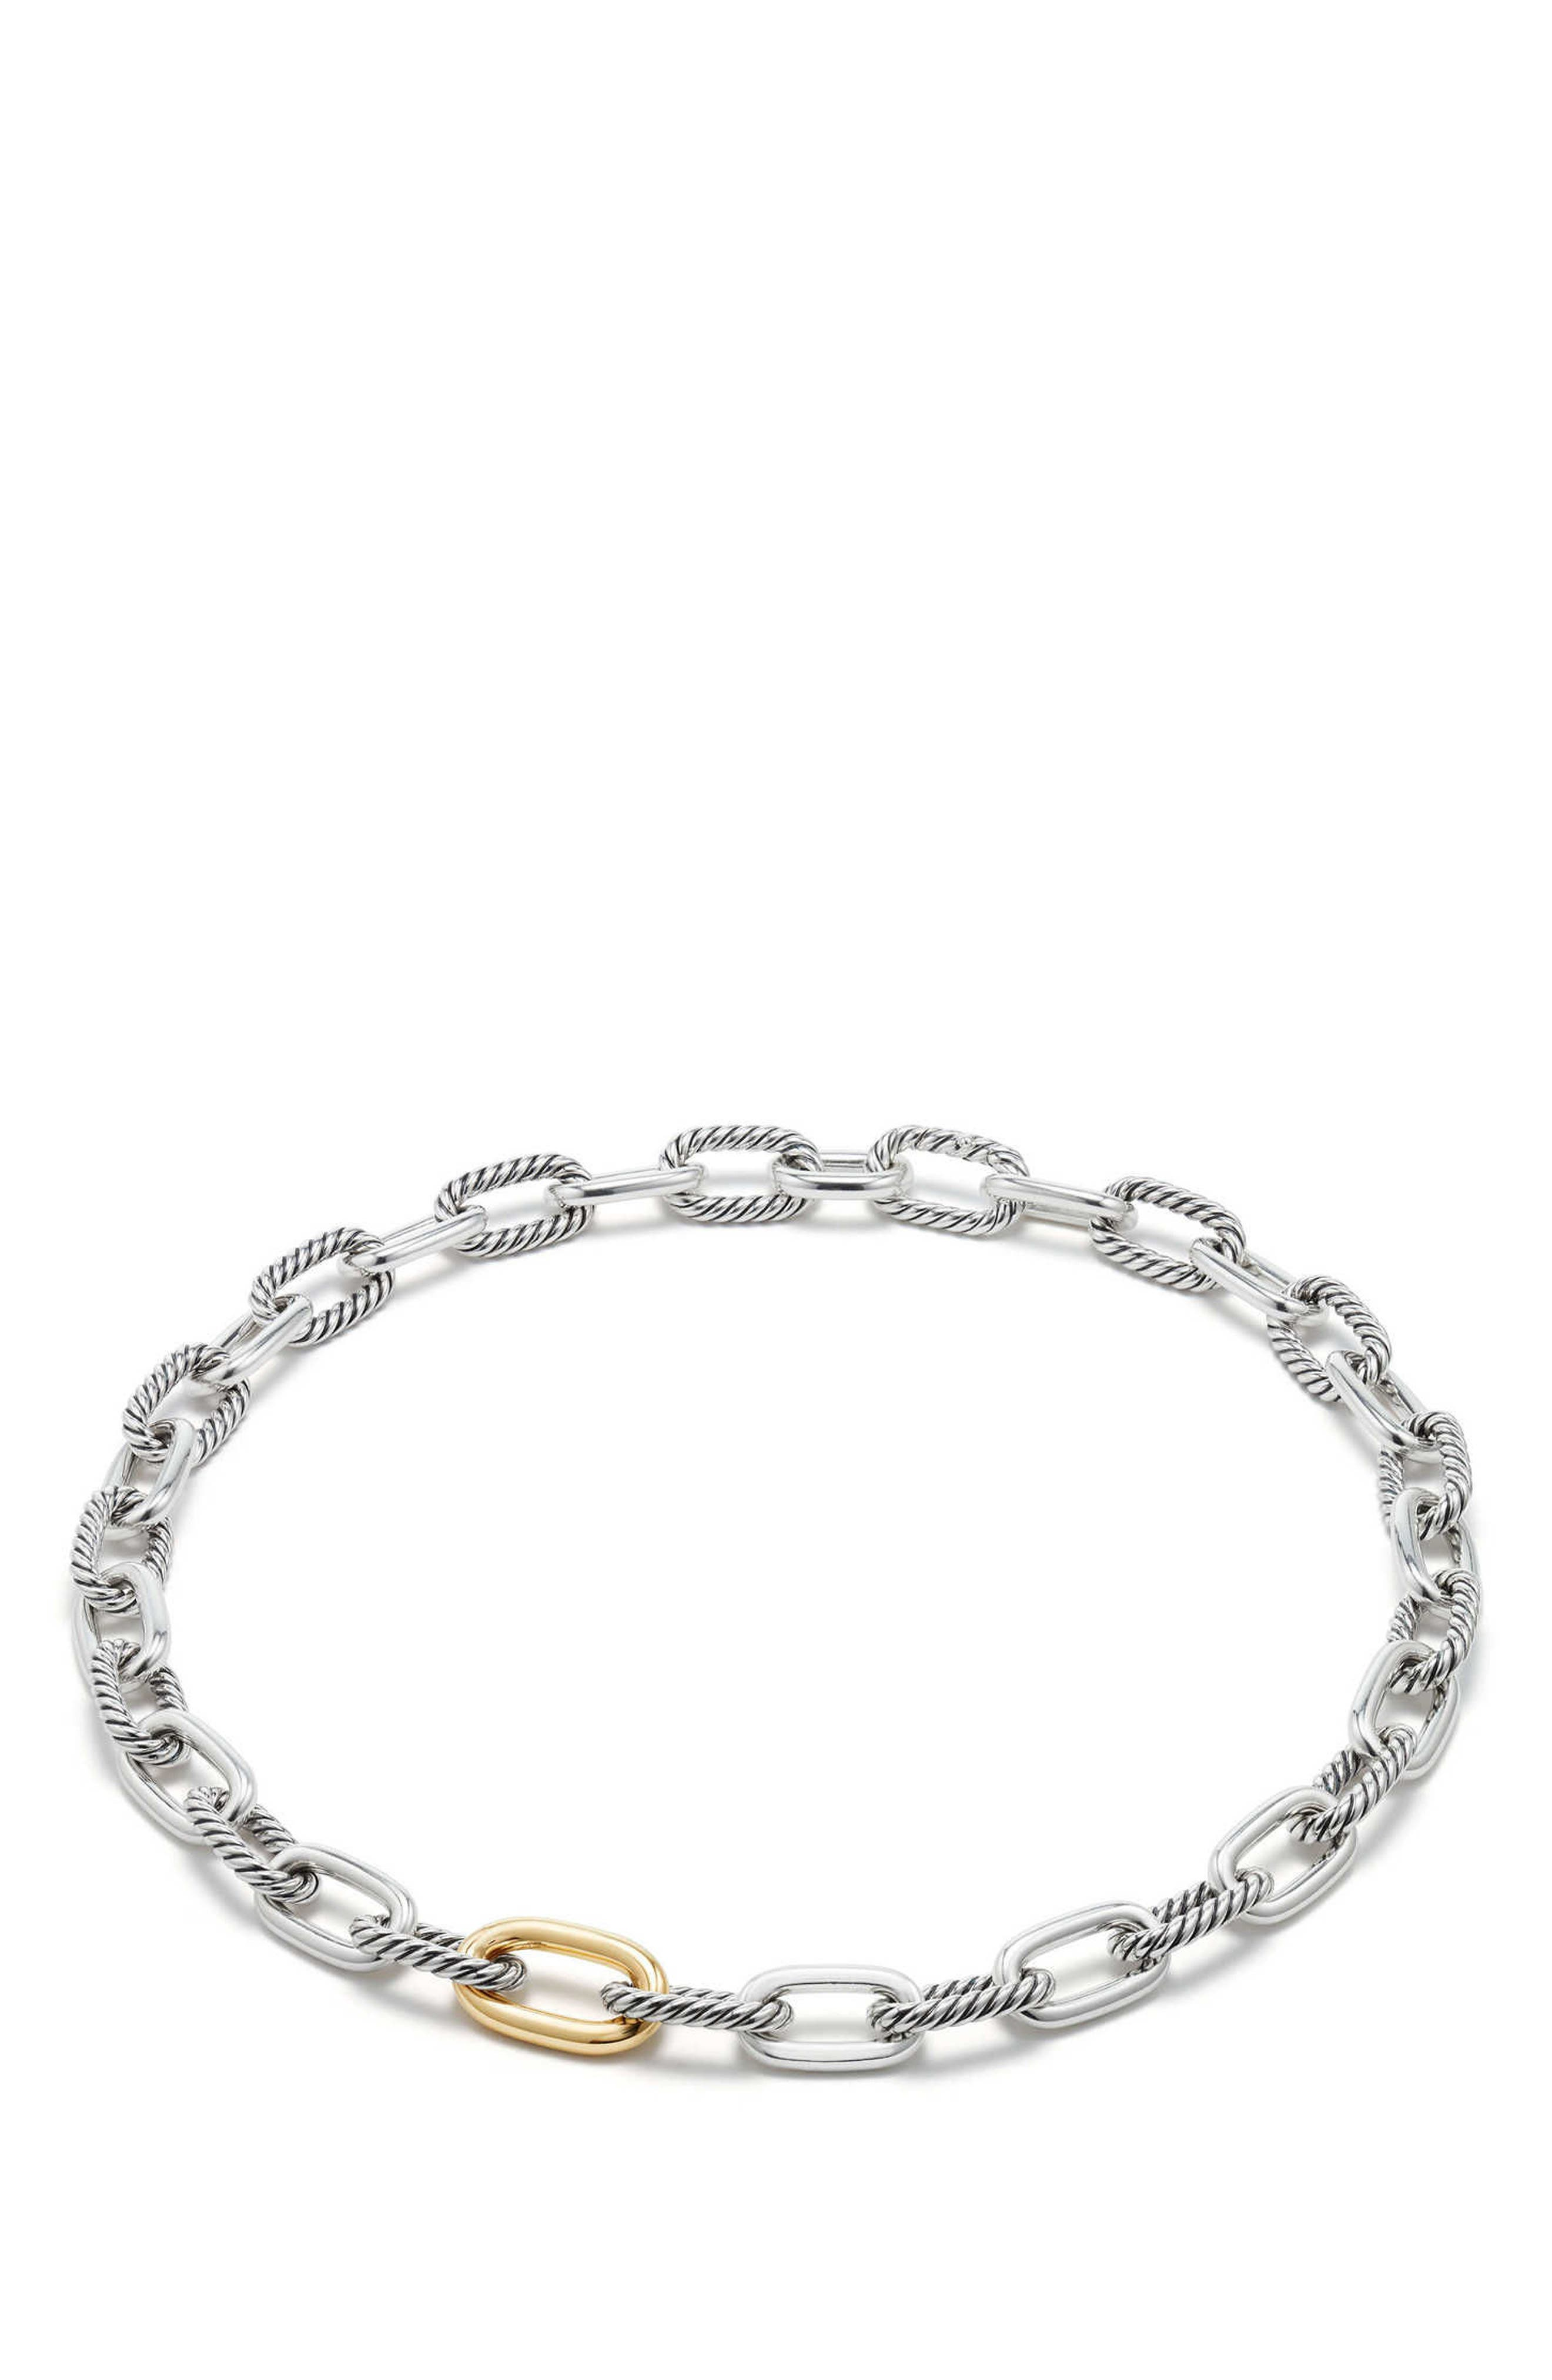 Madison Chain Medium Necklace,                             Alternate thumbnail 2, color,                             GOLD/ SILVER